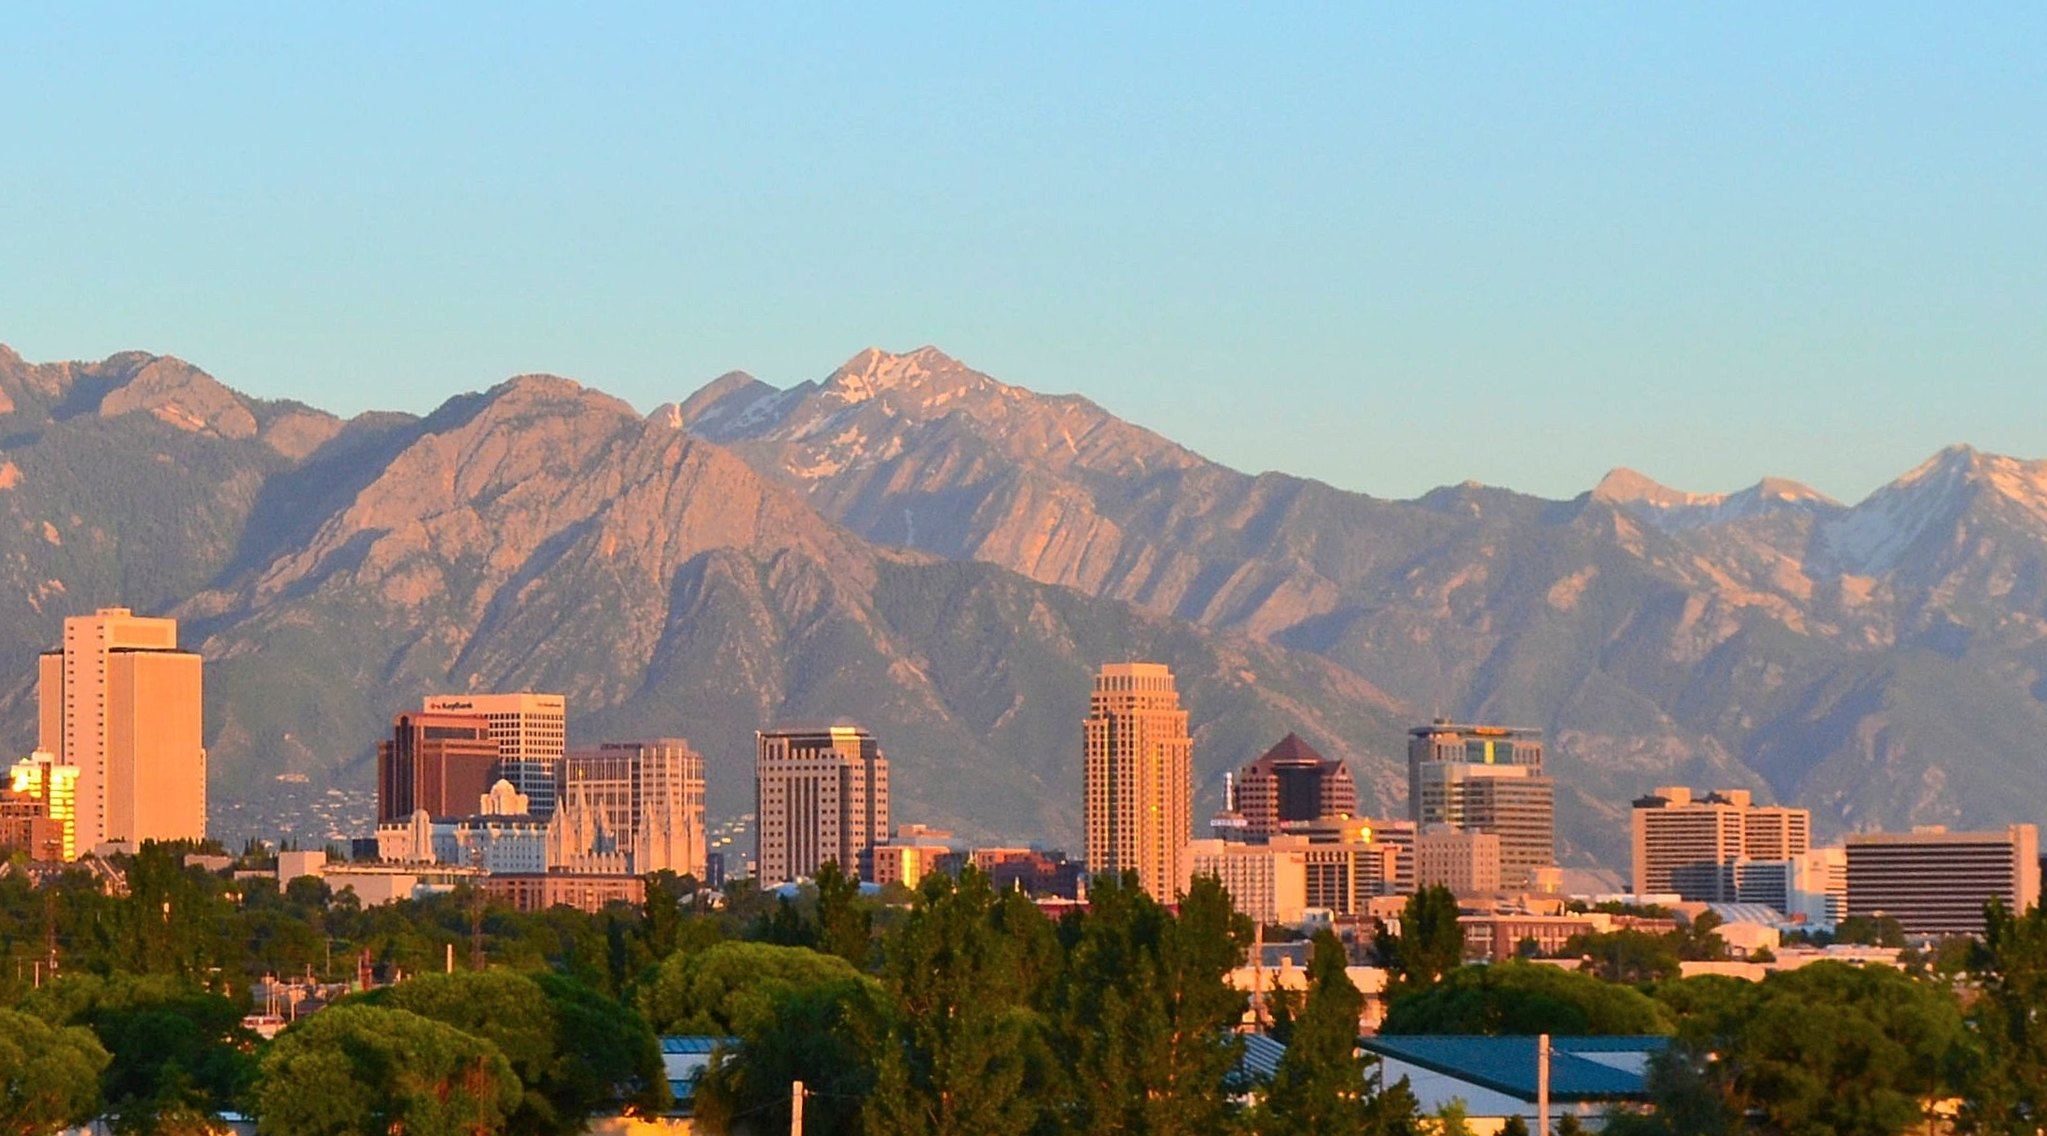 The Salt Lake City skyline, where Instructure is based.